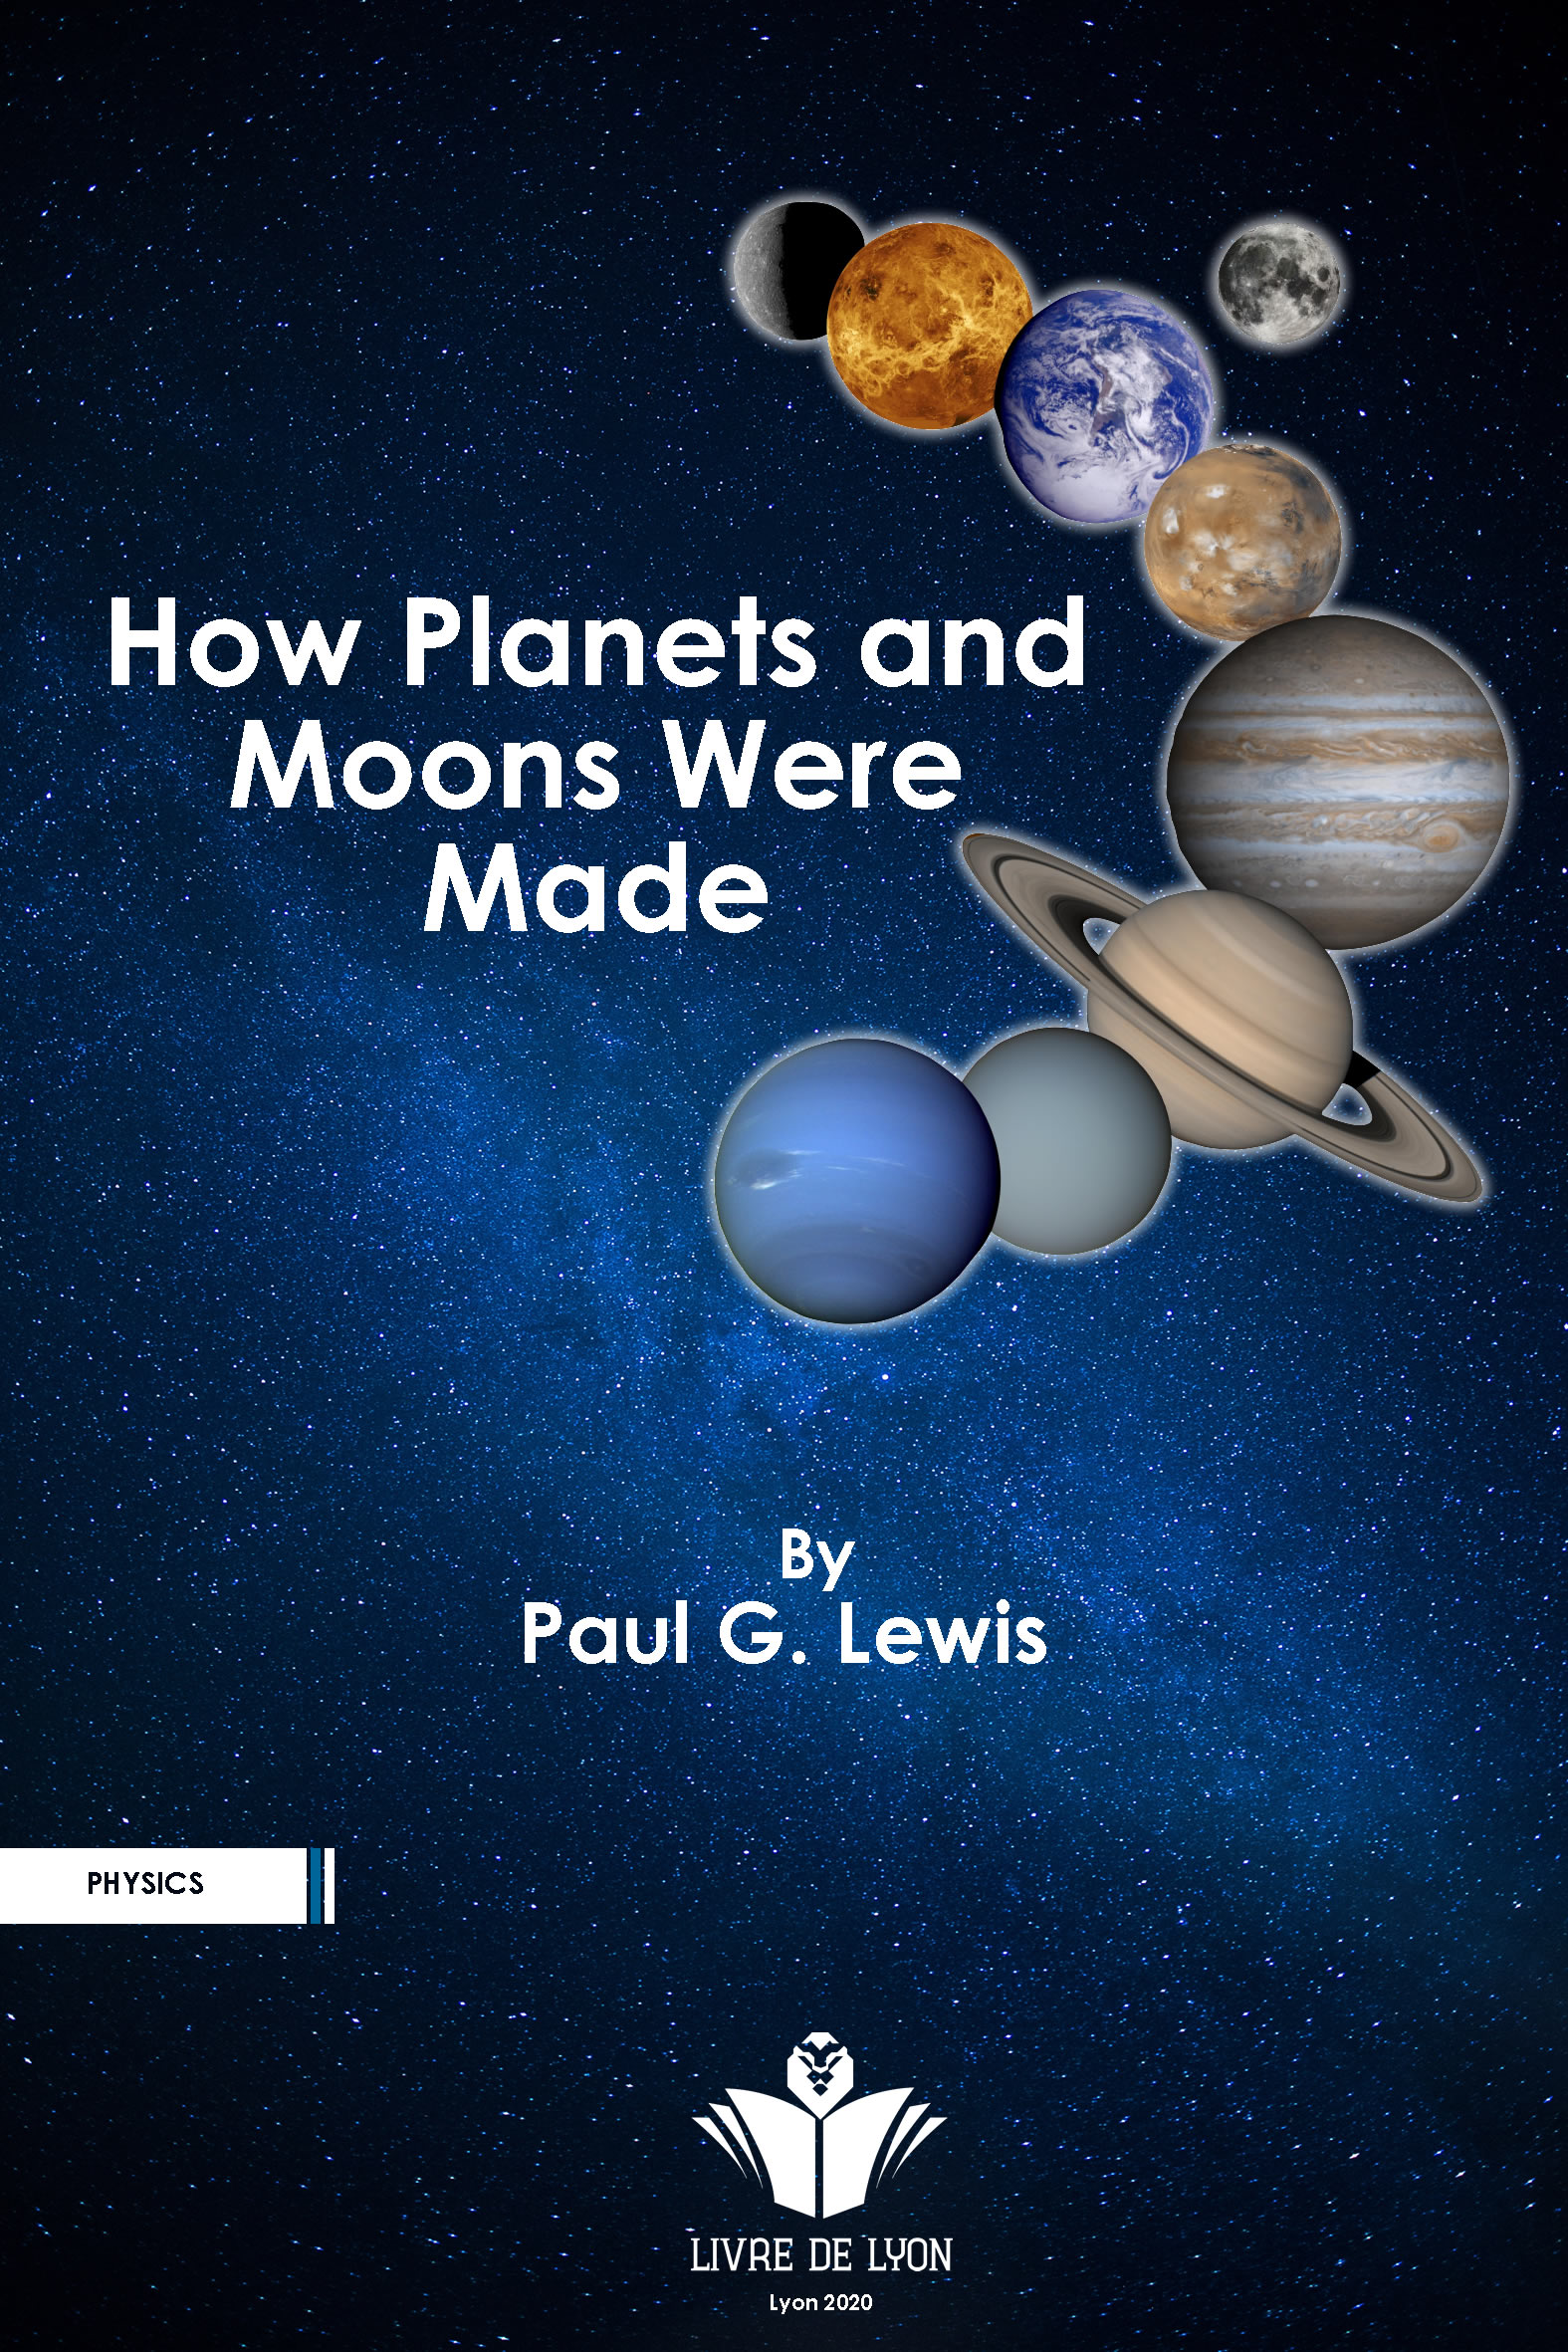 How Planets and Moons Were Made